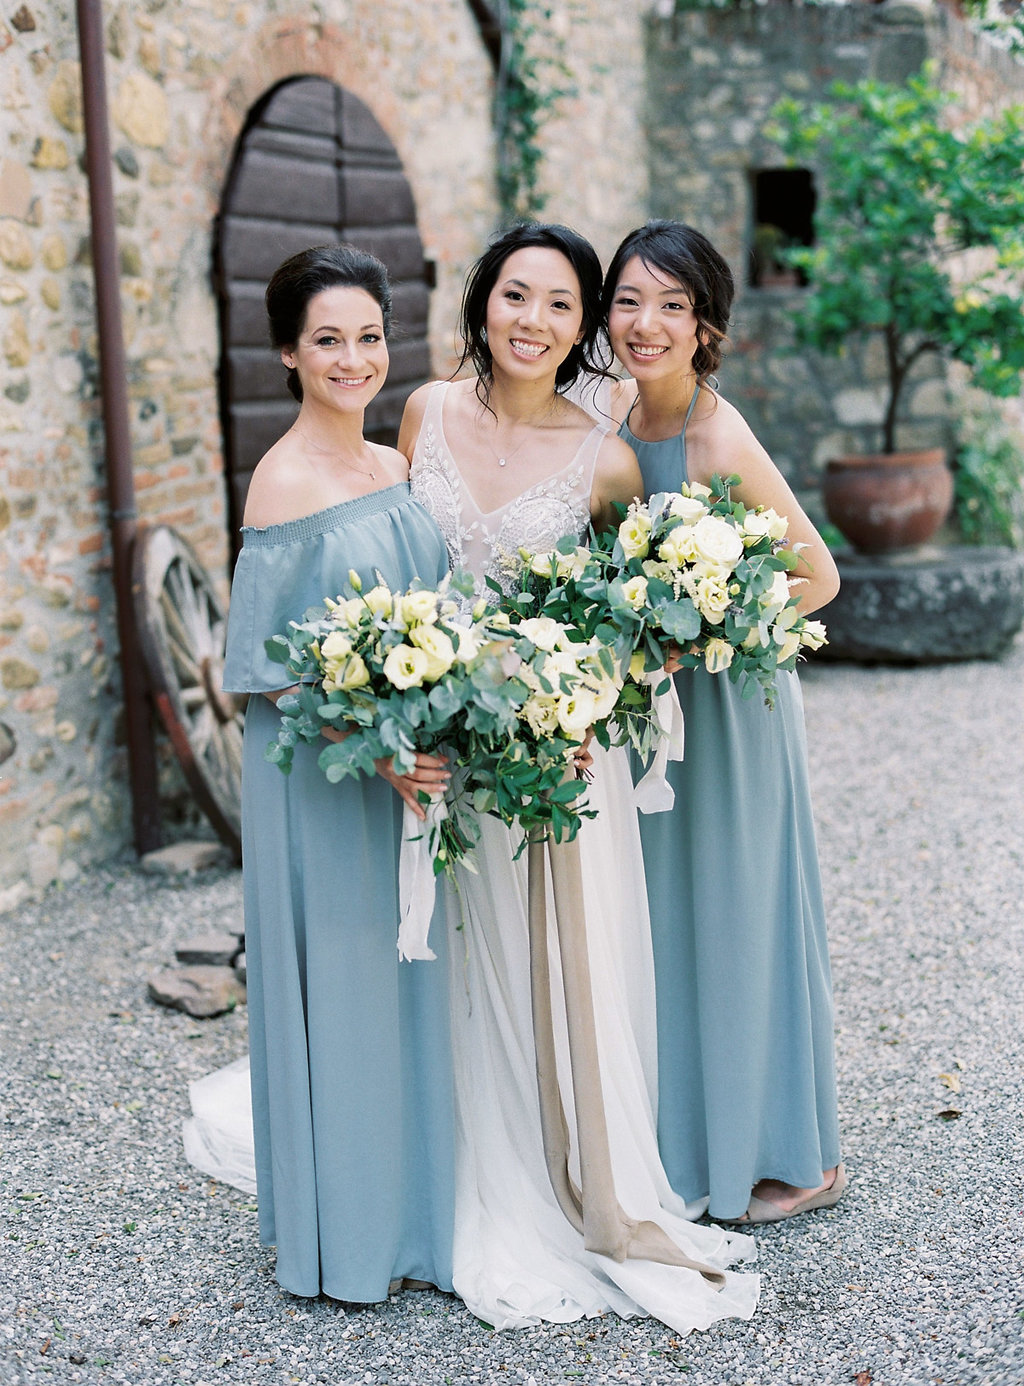 bridesmaids in dusty blue gowns - photo by Katie Grant Photography https://ruffledblog.com/classically-beautiful-intimate-wedding-in-tuscany